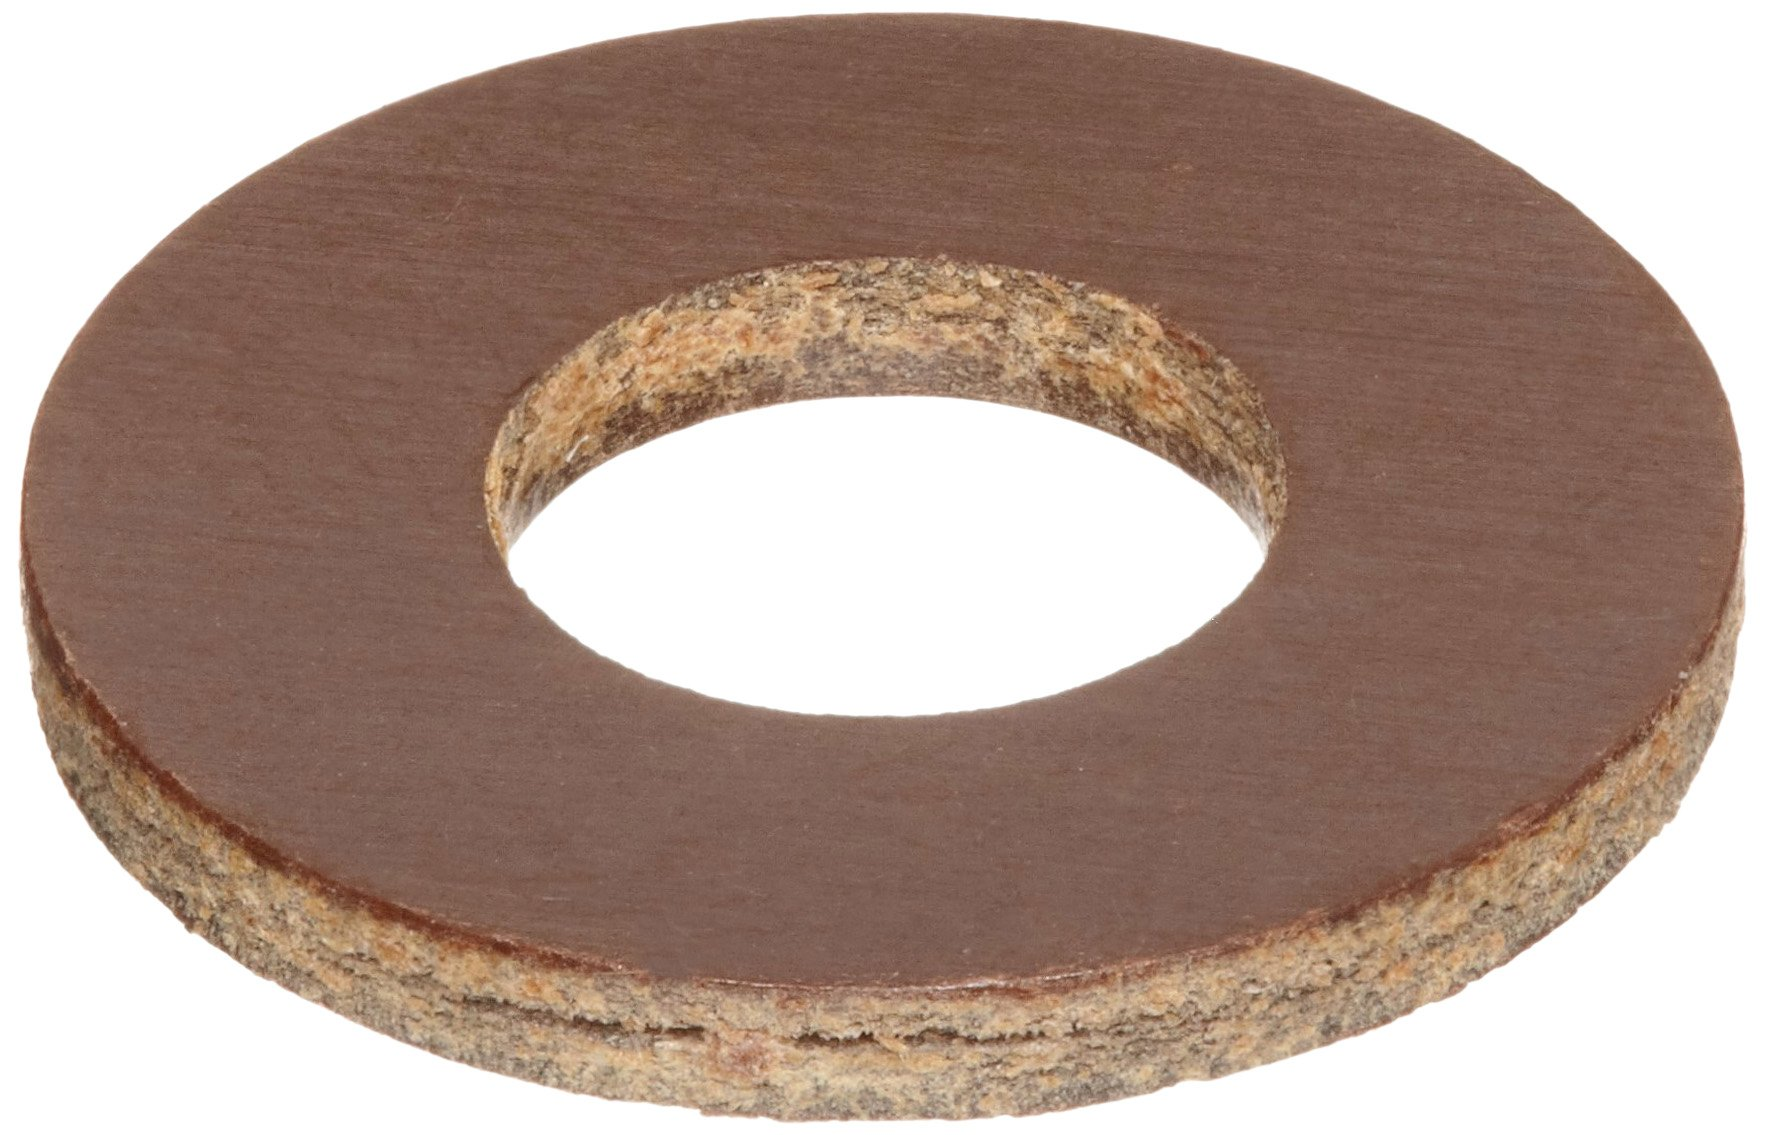 Phenolic Flat Washer, #4 Hole Size, 0.125'' ID, 0.312'' OD, 0.063'' Nominal Thickness, Made in US (Pack of 25) by Small Parts